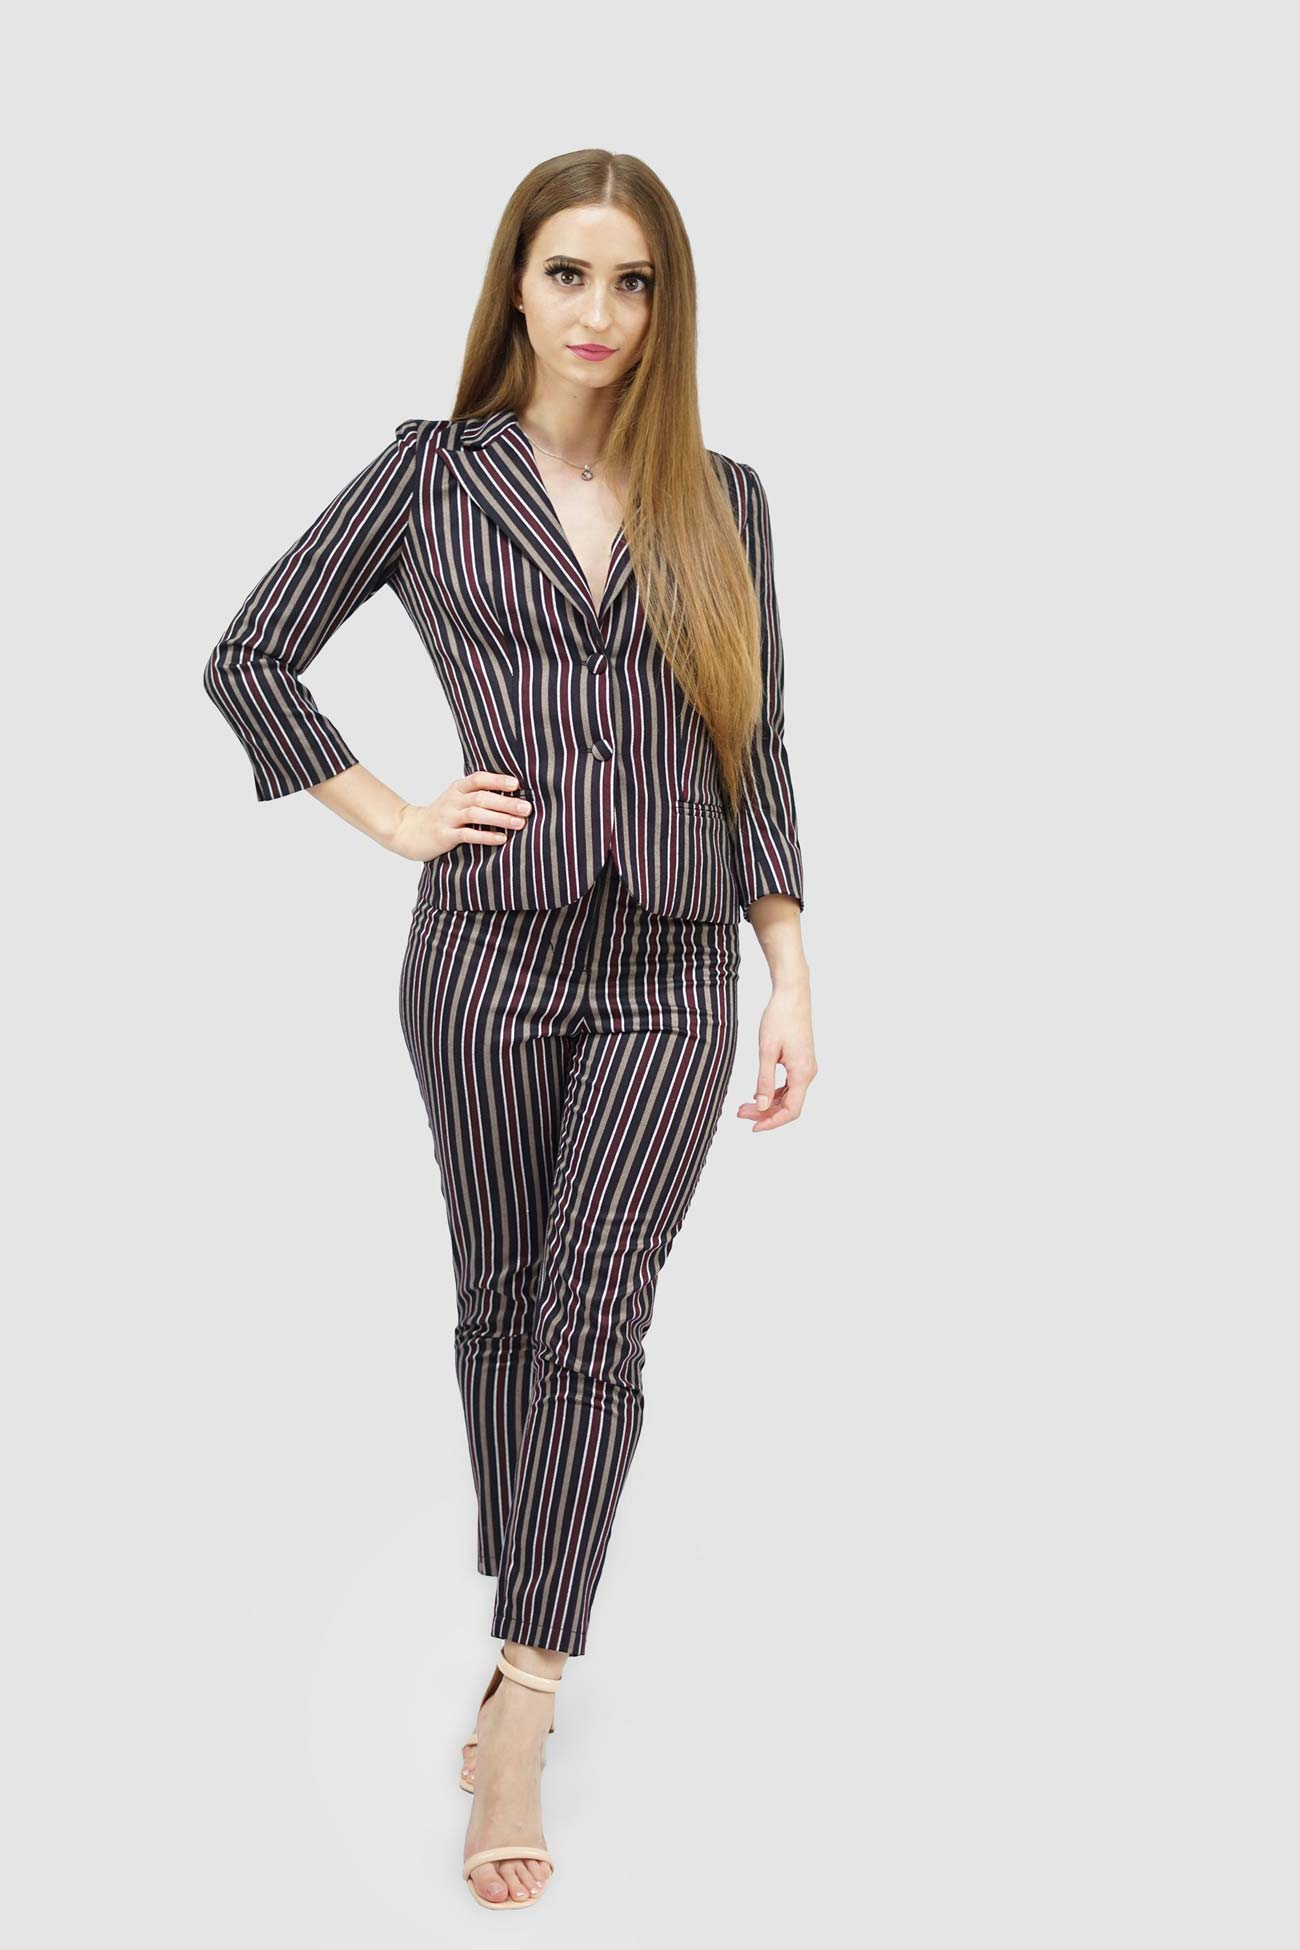 Work Play Suit Women S Trouser Suit Style Suit